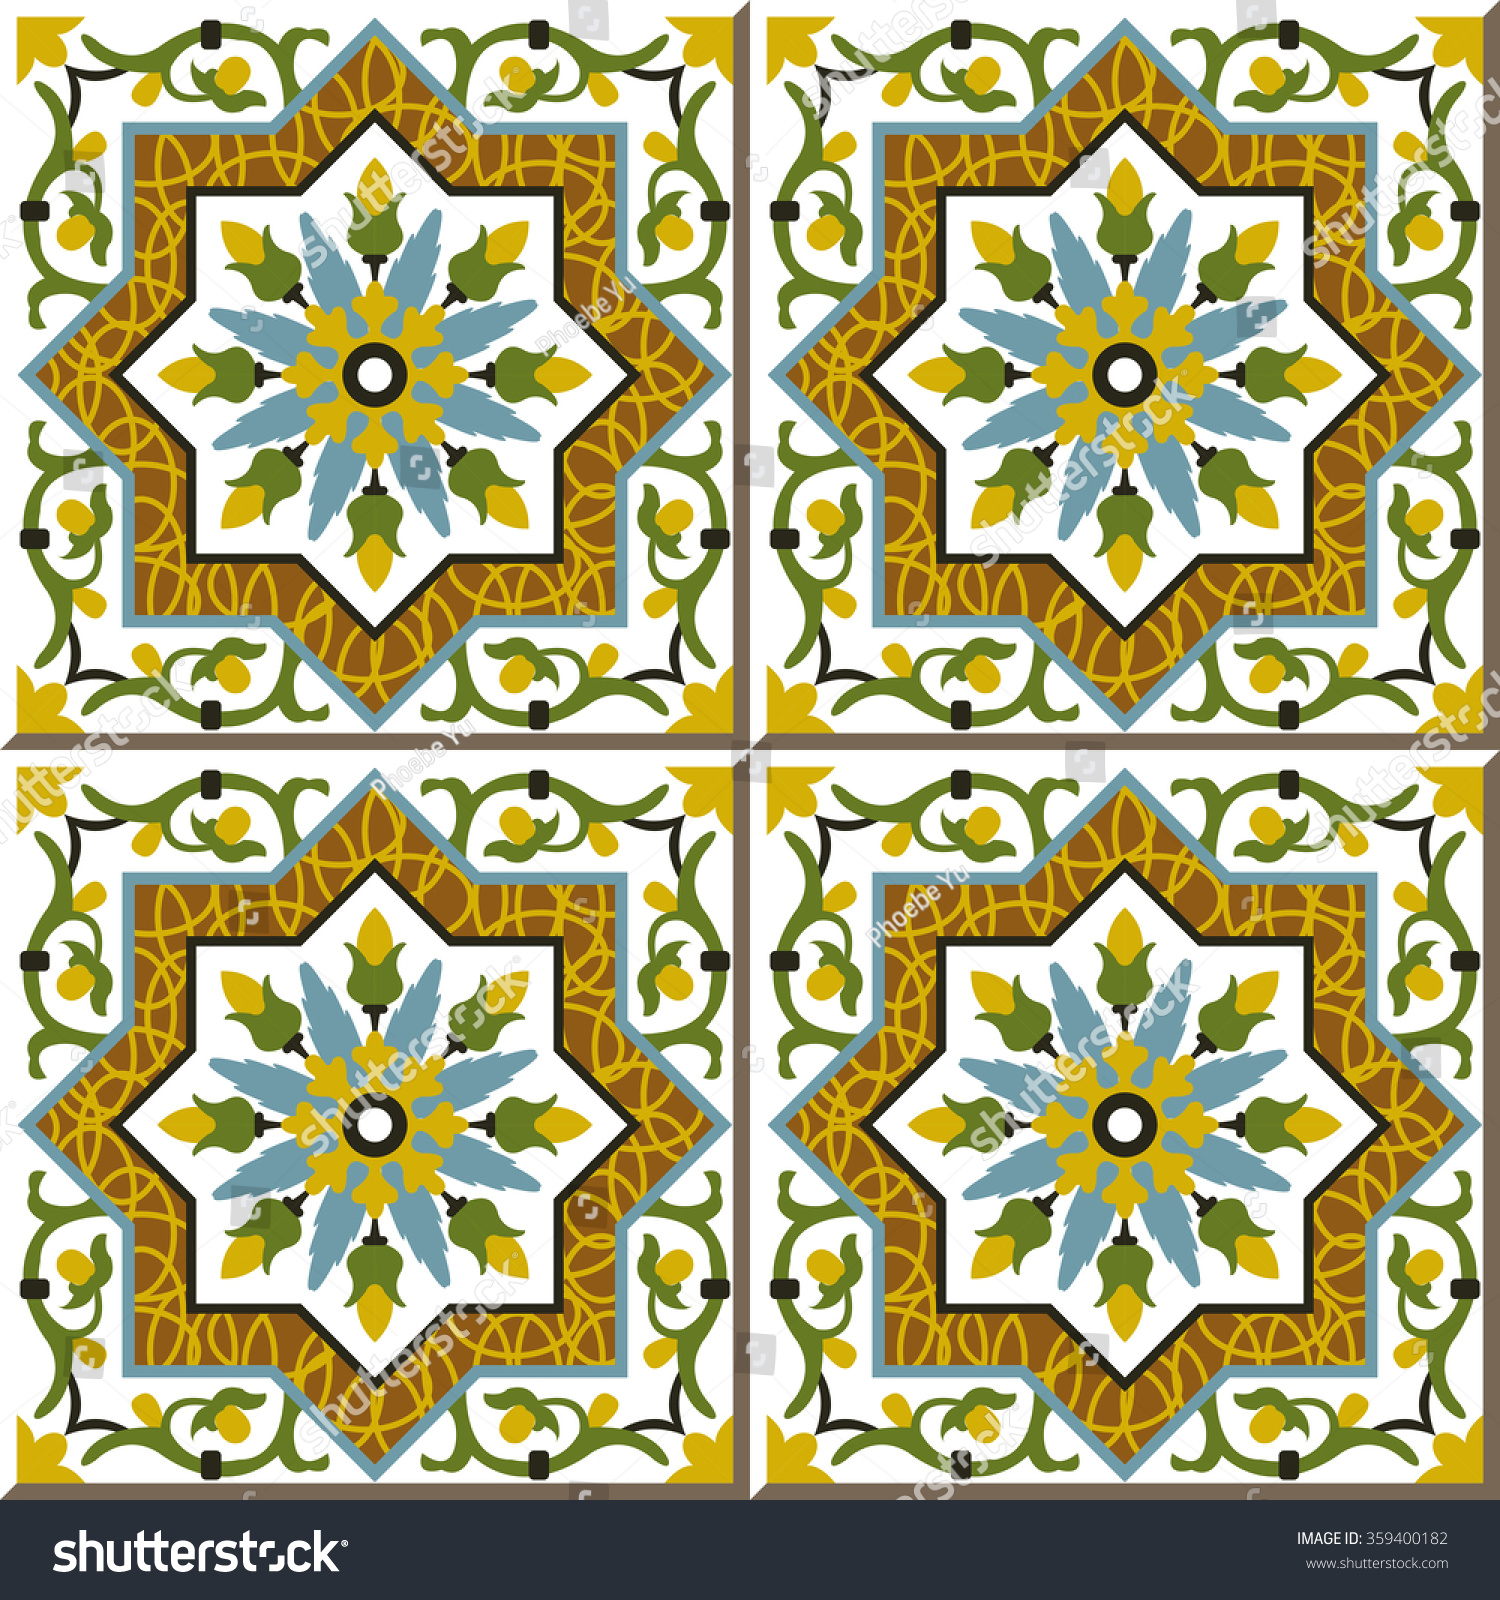 Vintage Seamless Wall Tiles Spiral Vine Stock Vector (Royalty Free ...